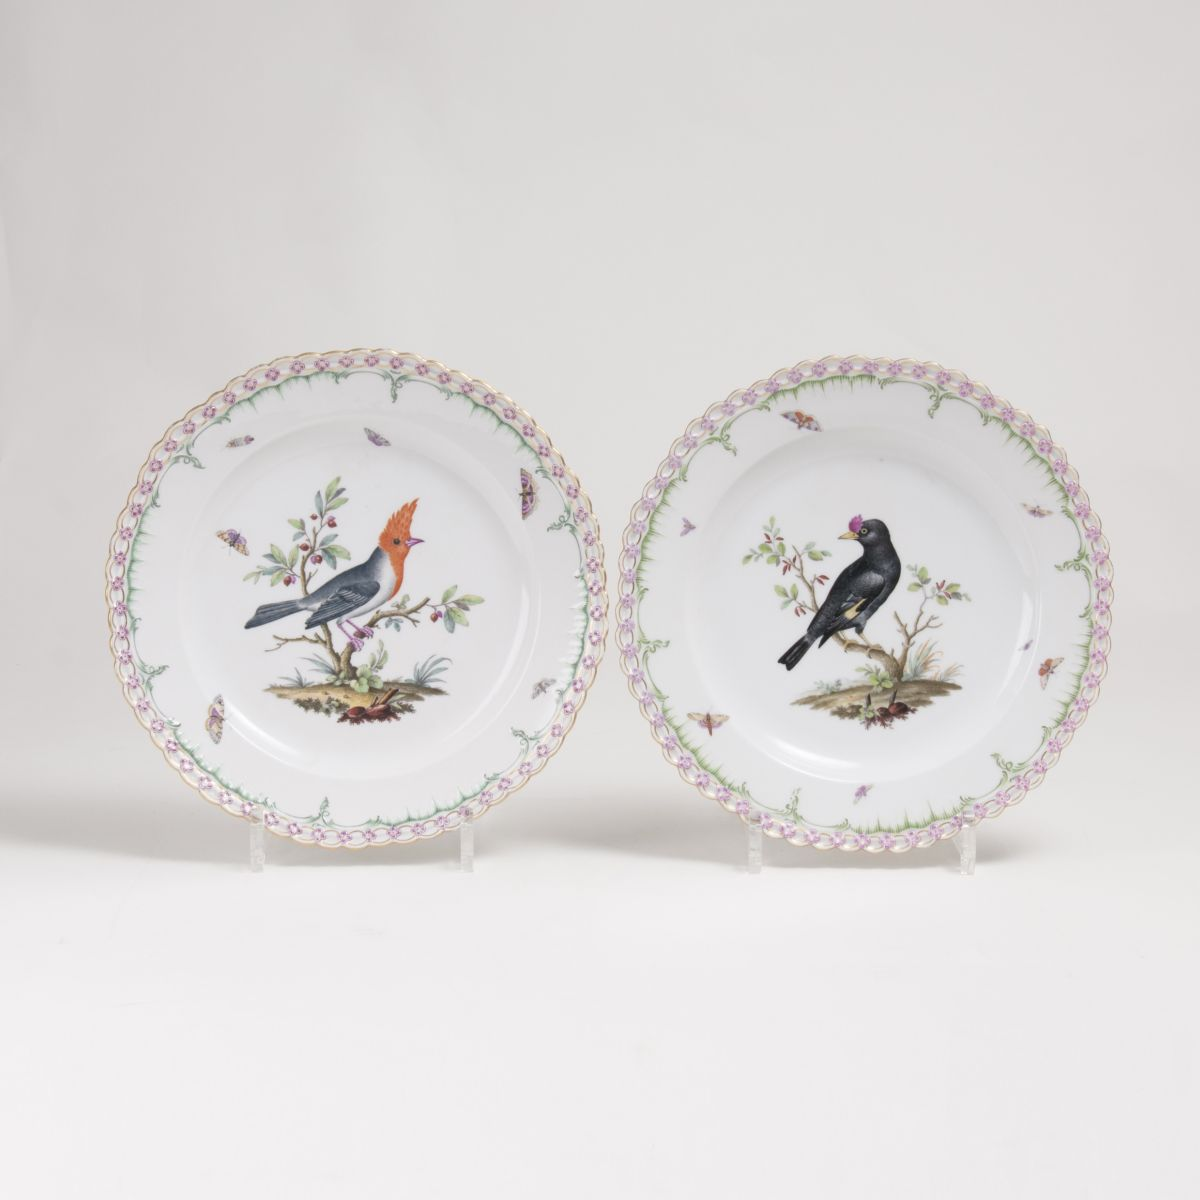 A Pair of Plates with Bird Painiting